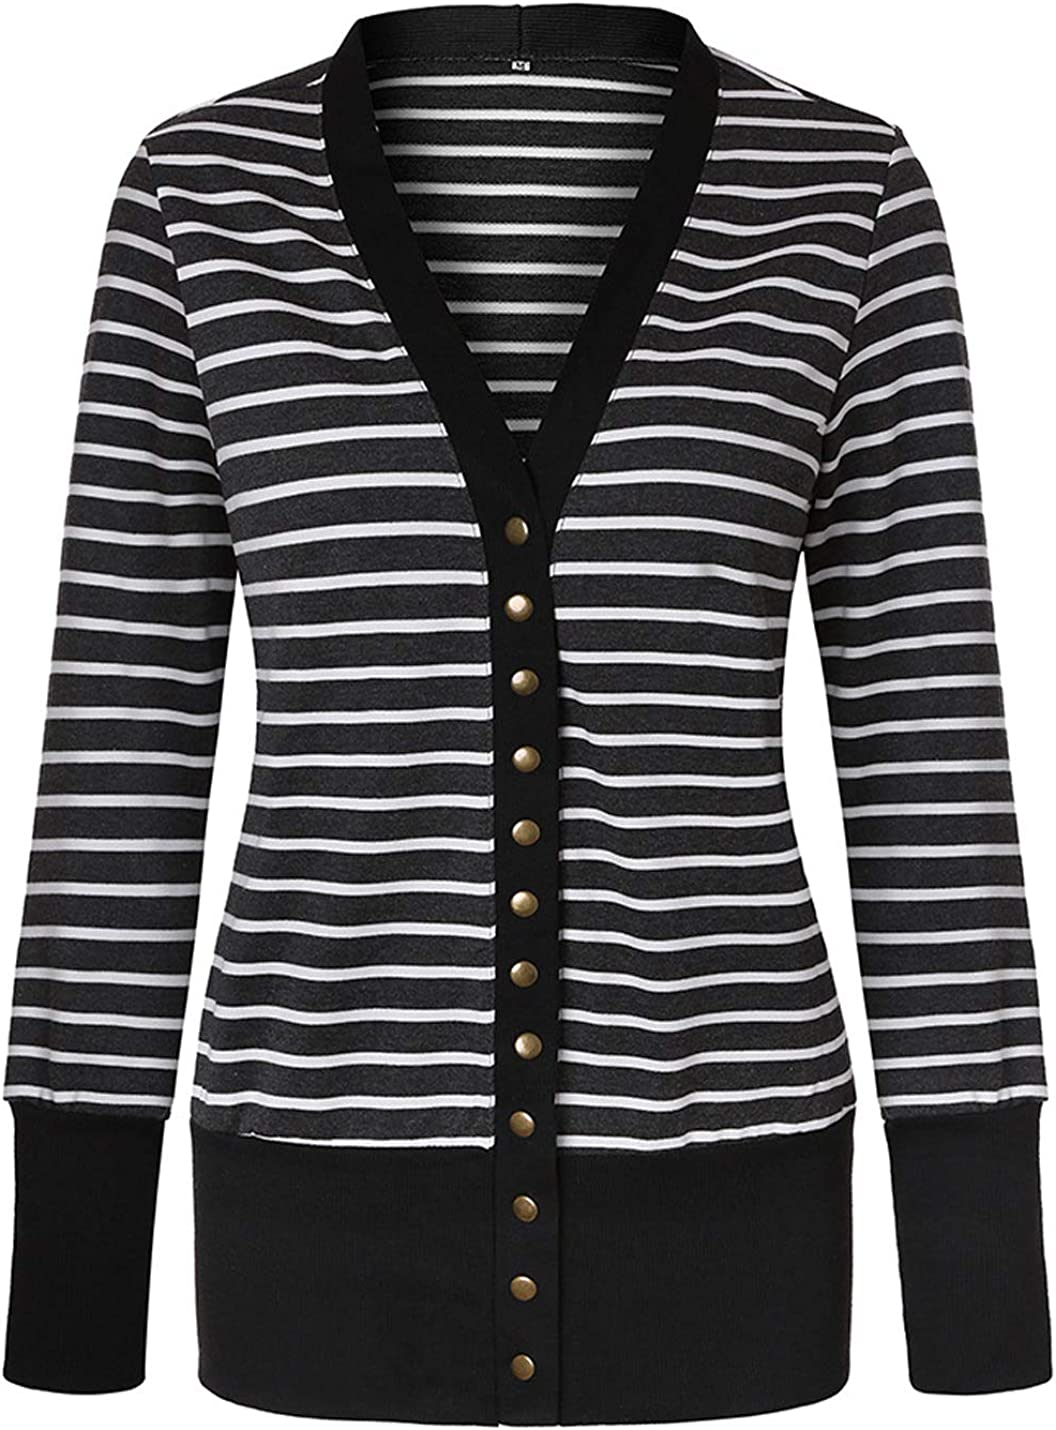 Omoone Women's Snap Button Up V-Neck Striped Basic Knit Cardigan Sweater